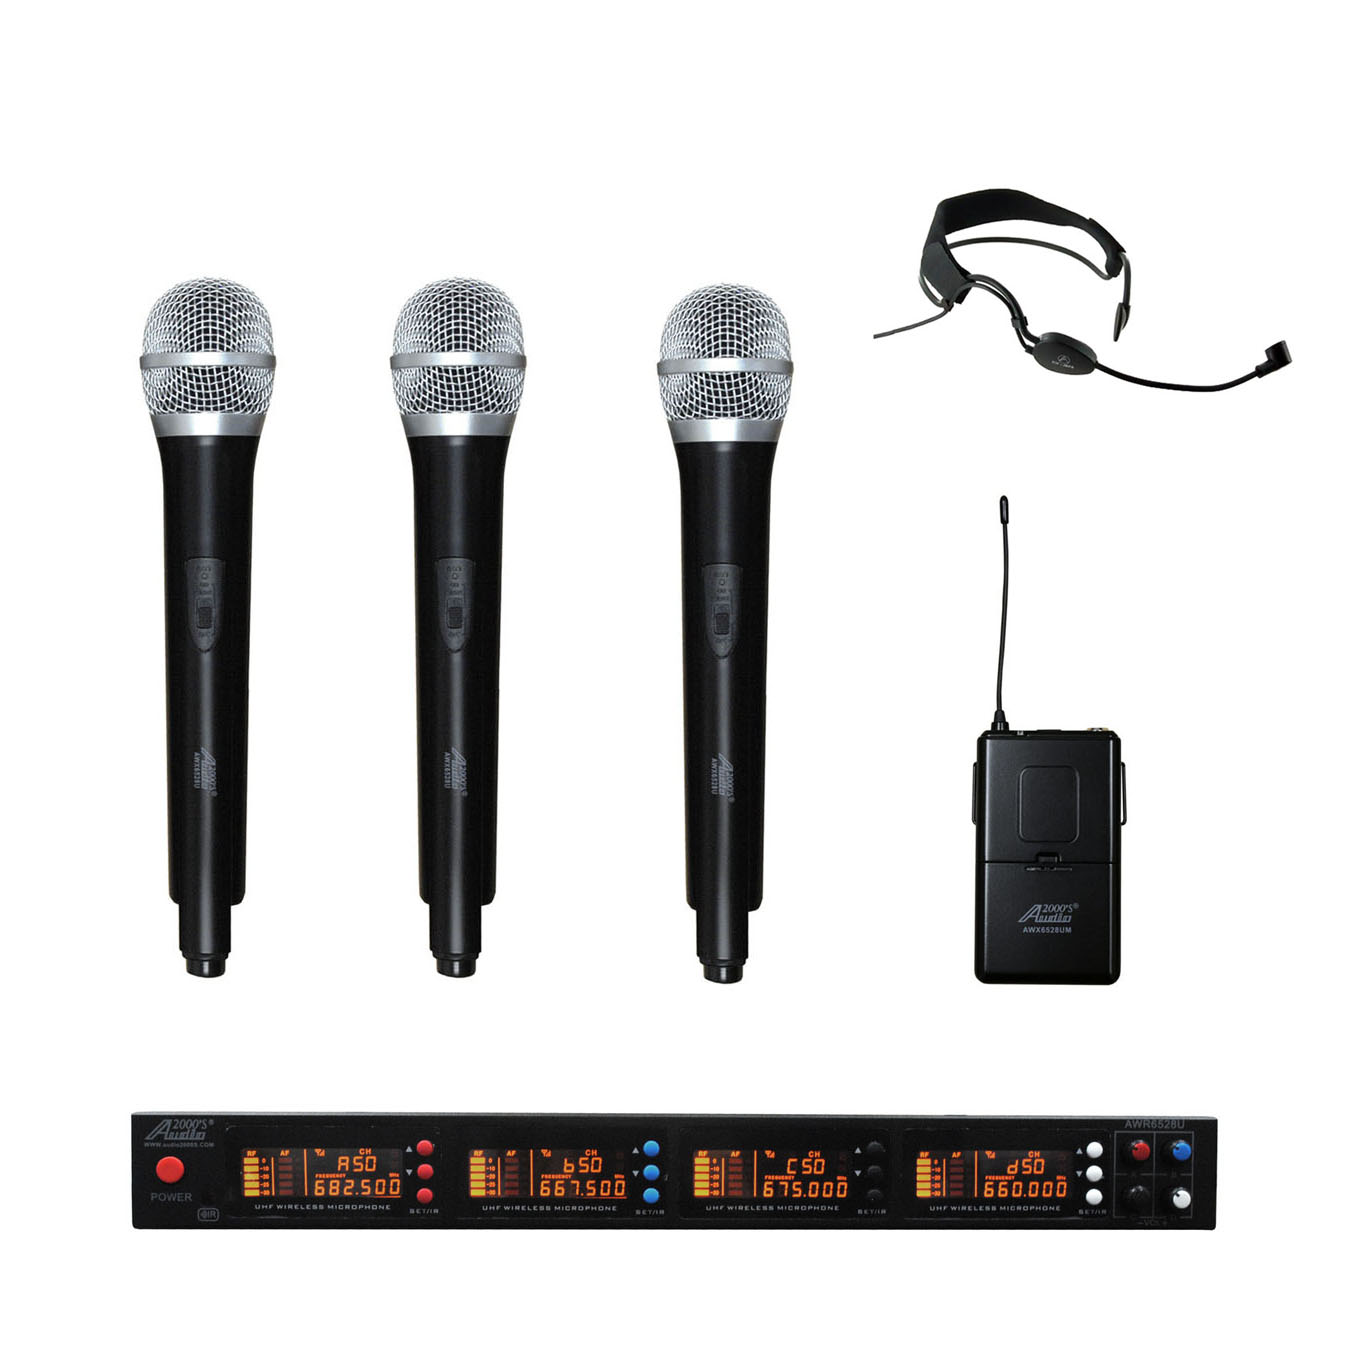 Audio2000s AWM6528H3HS UHF 4 Channel Wireless Microphone w 3 Handheld & 1 Headband Headset... by